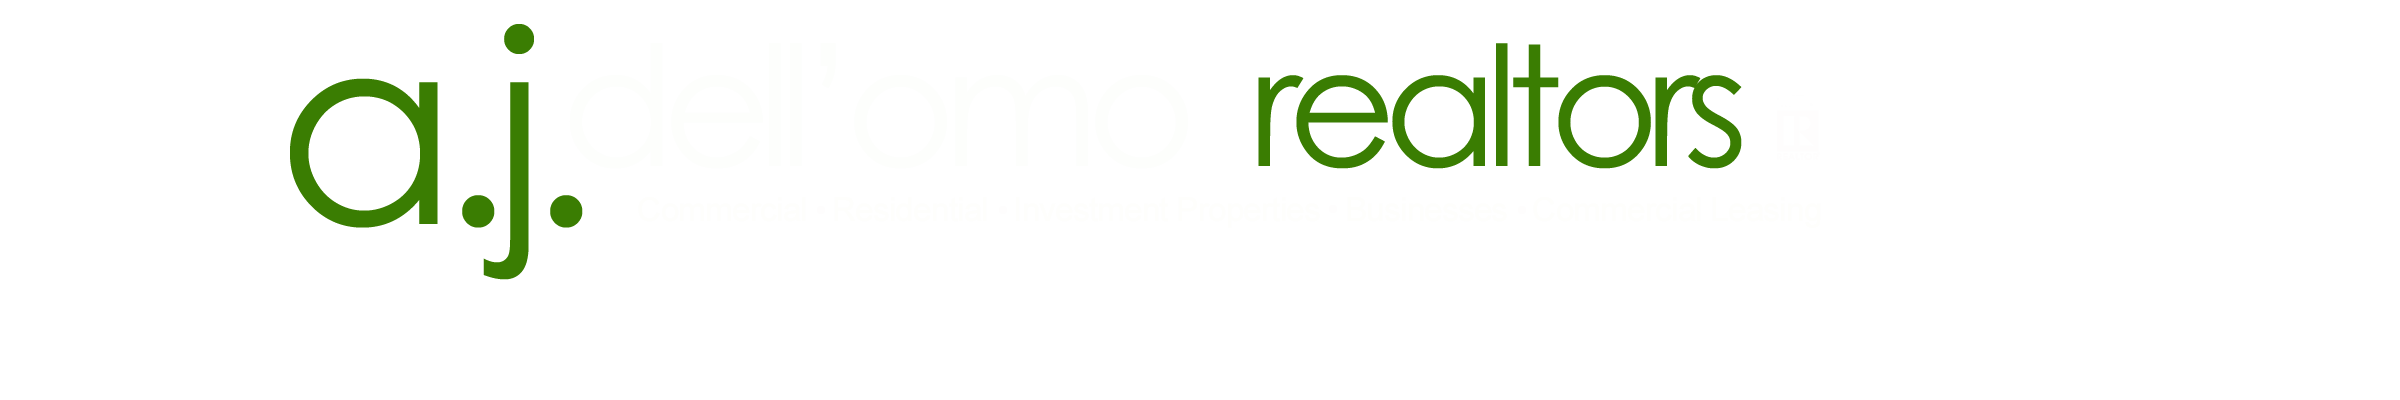 A.J. Dell'Omo Inc. Realtors